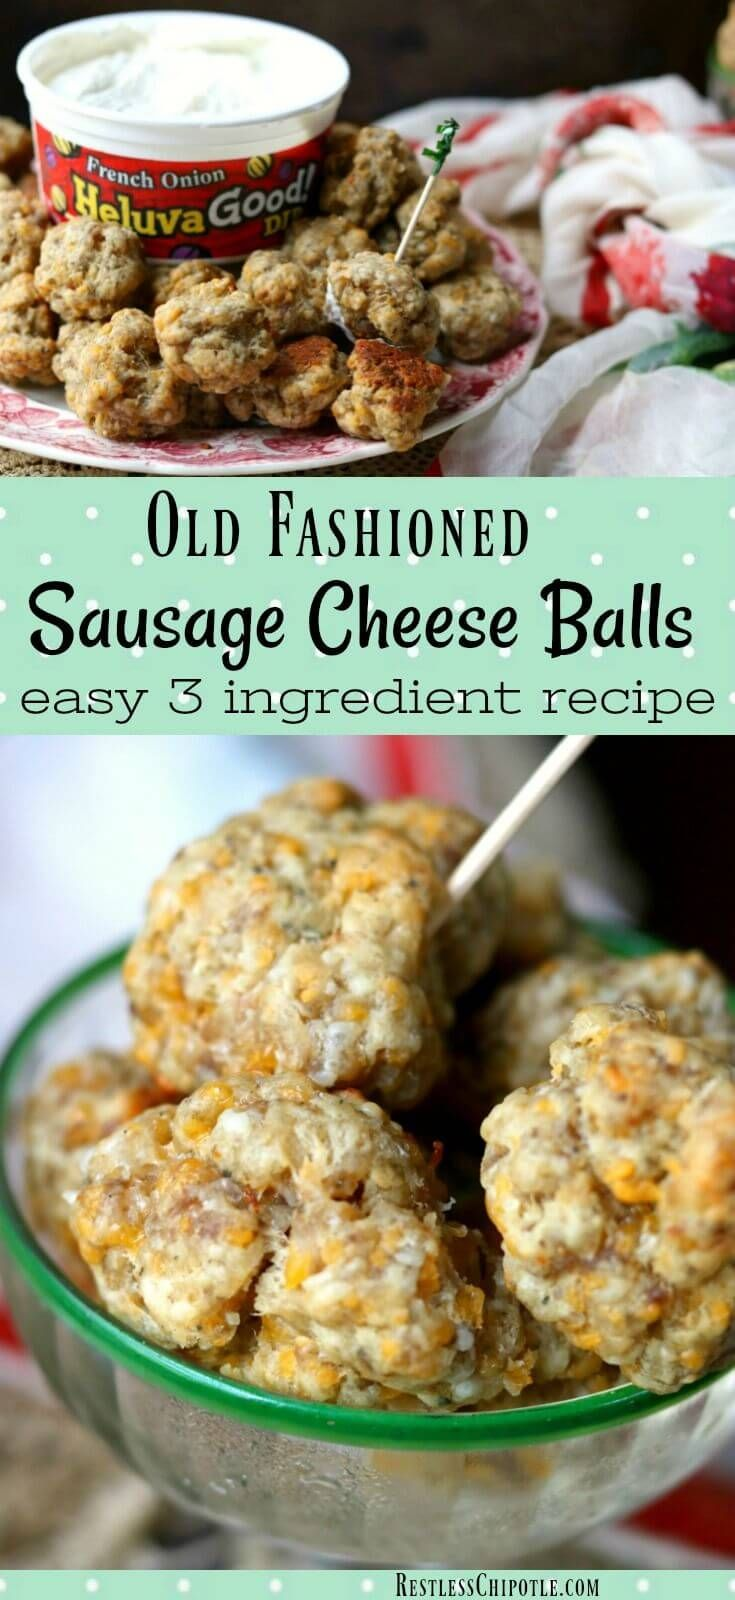 Sausage cheese balls are a classic Southern appetizer. This easy recipe is perfect for holiday parties and potlucks. Just 3 ingredients! #holidayrecipes #southernrecipes #appetizers from RestlessChipotle.com!